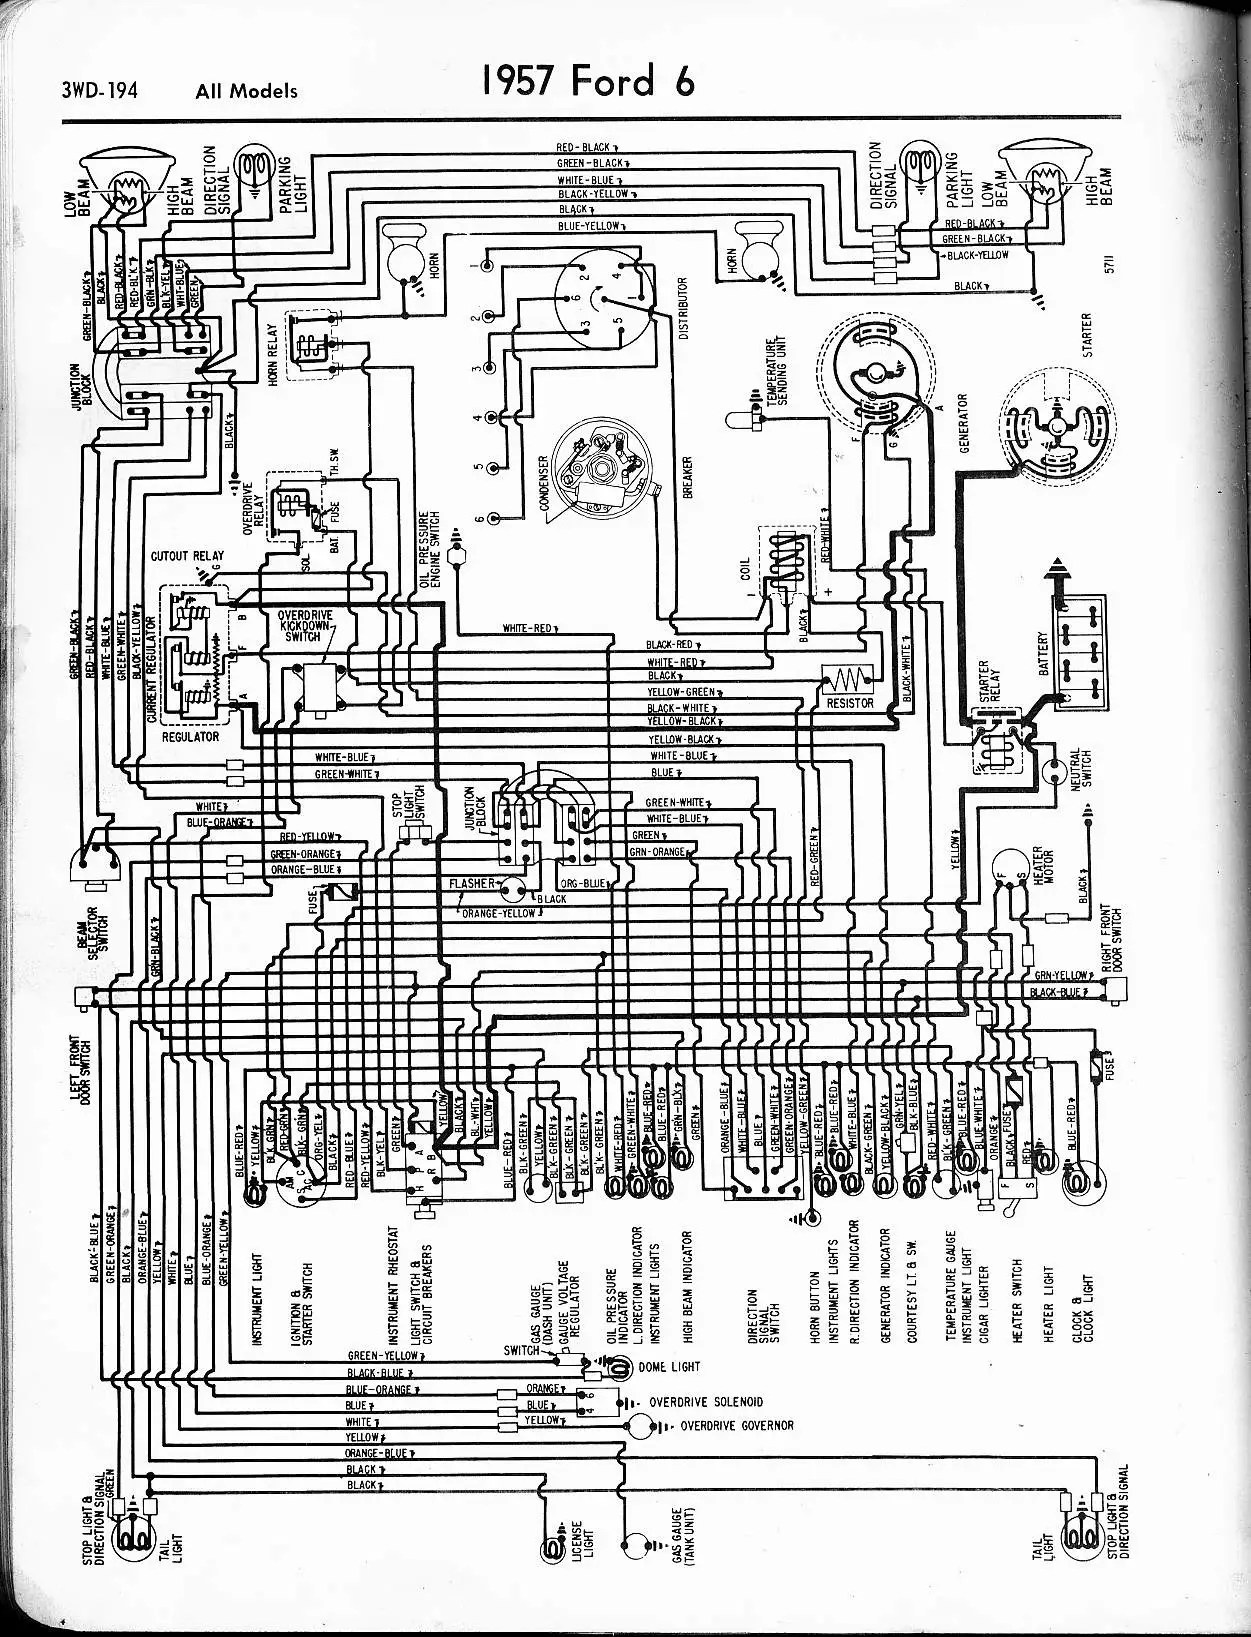 hight resolution of 73 ford pinto ignition system wiring diagram wiring library rh 75 mac happen de duraspark ignition